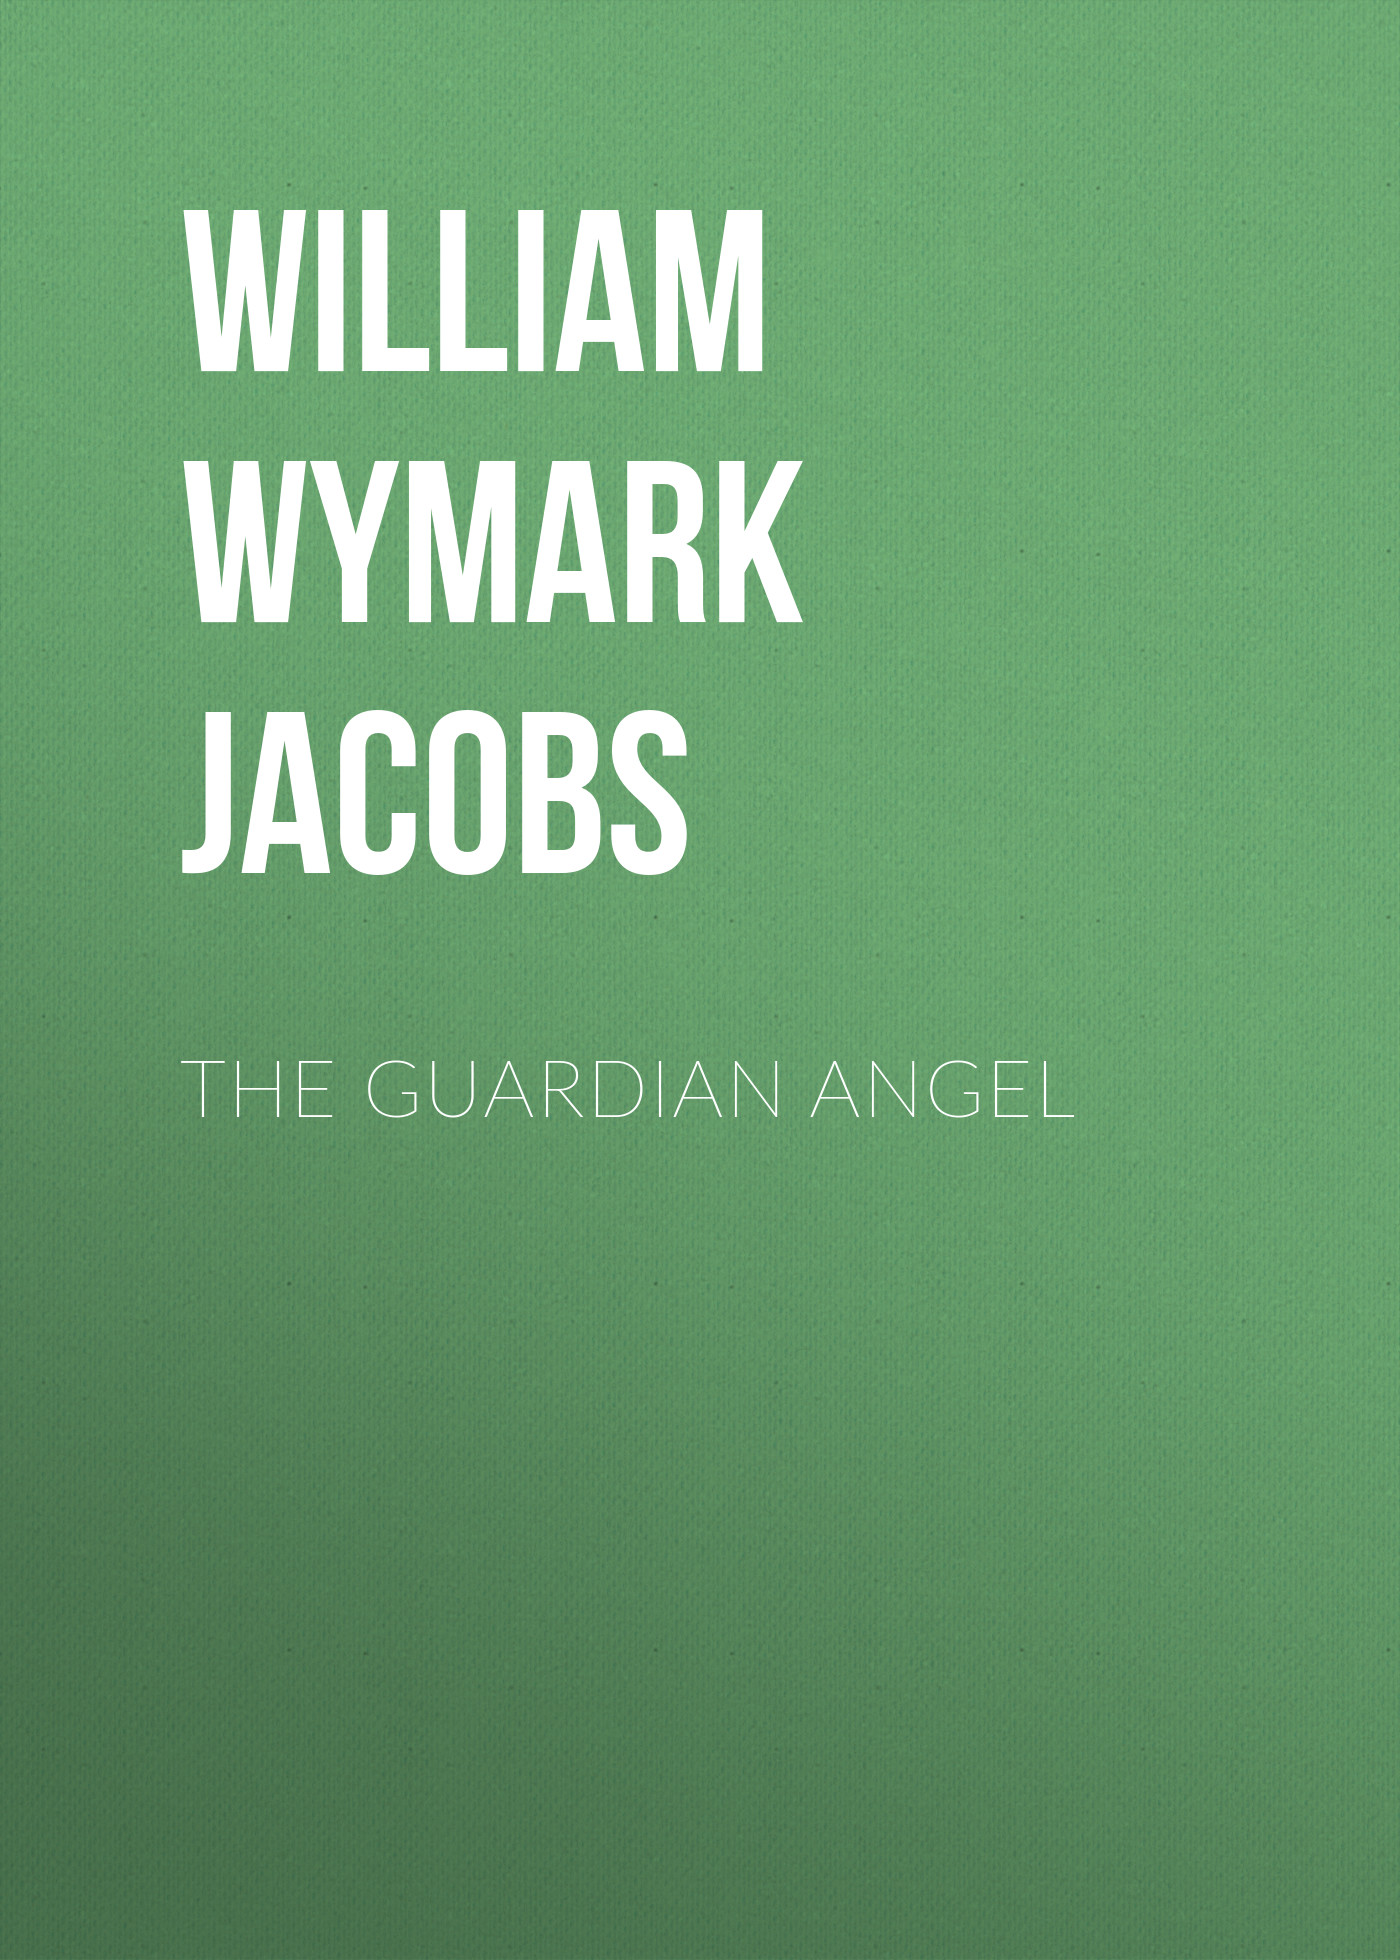 William Wymark Jacobs The Guardian Angel